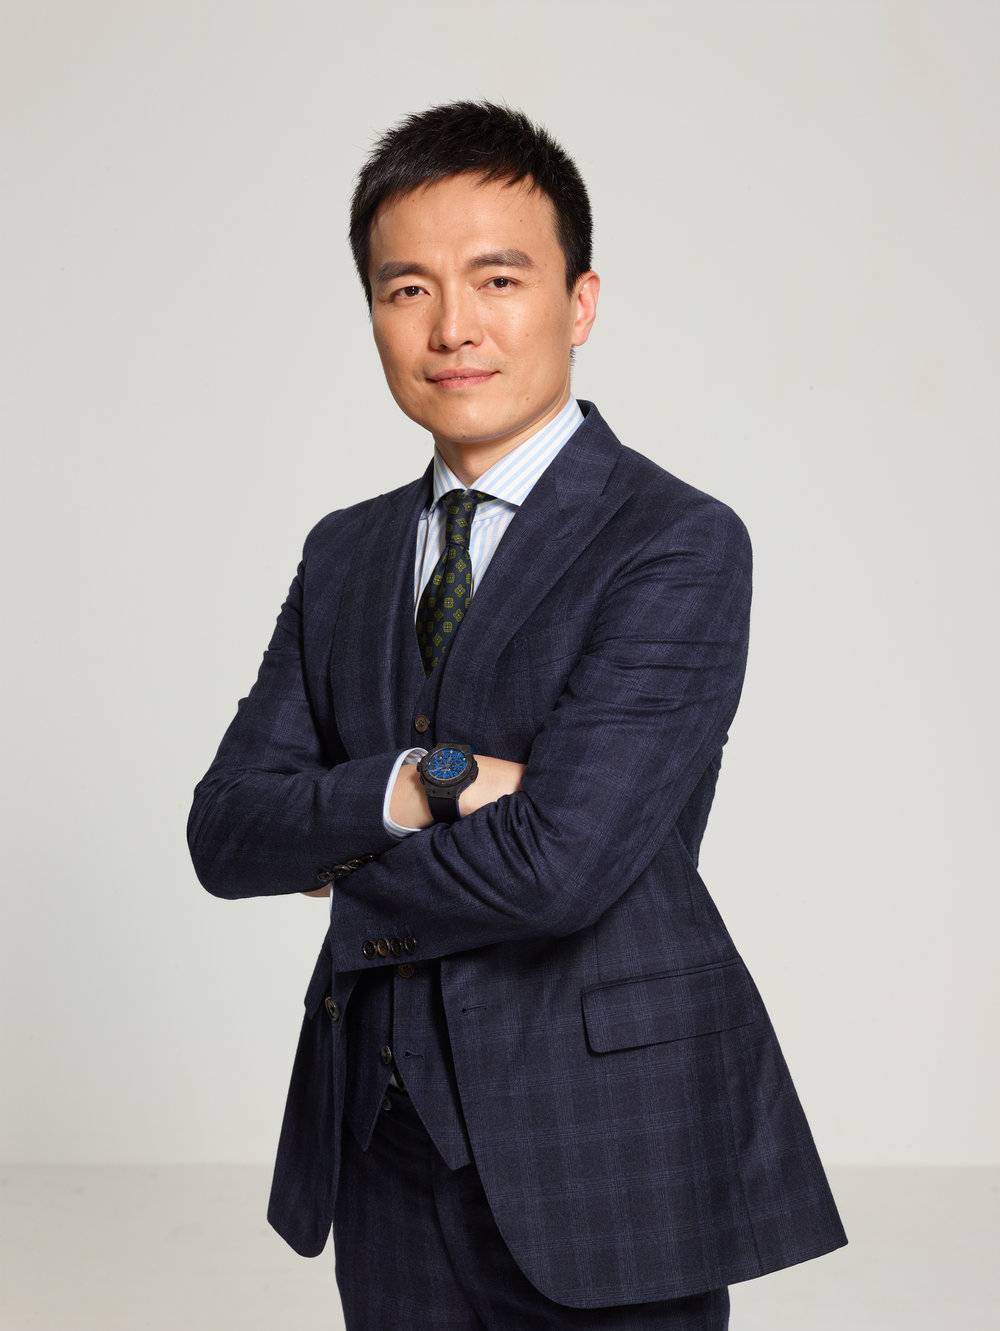 Derek Haoyang Li - Founder and Chairman